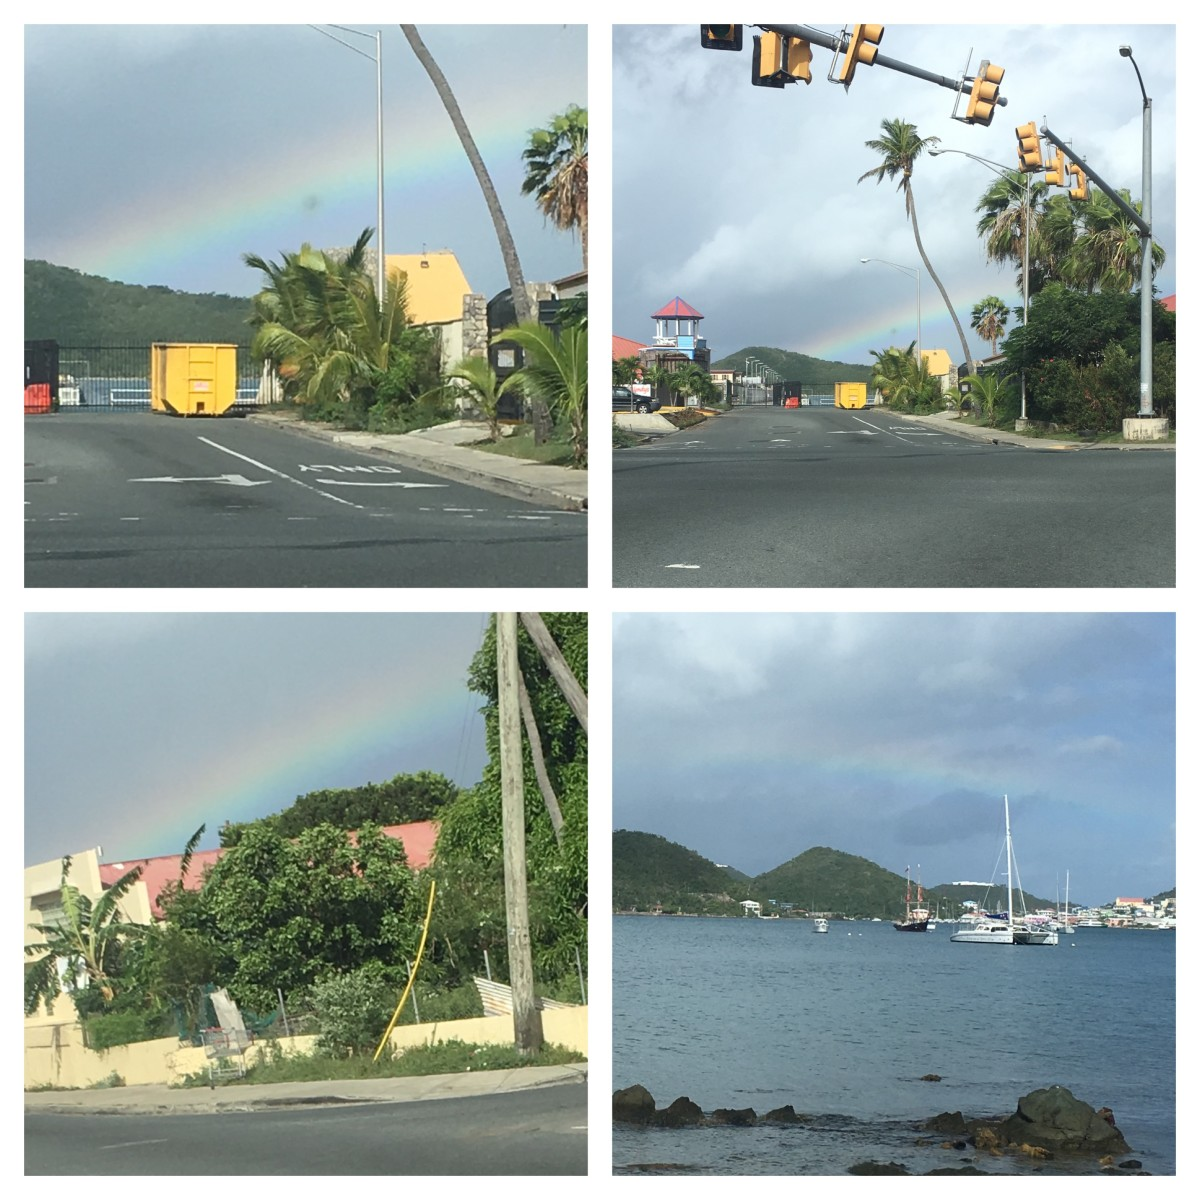 Phenomenal view of a rainbow. Captivated on July 19, 2018 by Photographer Stanley Griffin. Looking over Havensight.  At the stop light by Wendy's, driving westward on water front the rainbow illusion continues over Water Island.